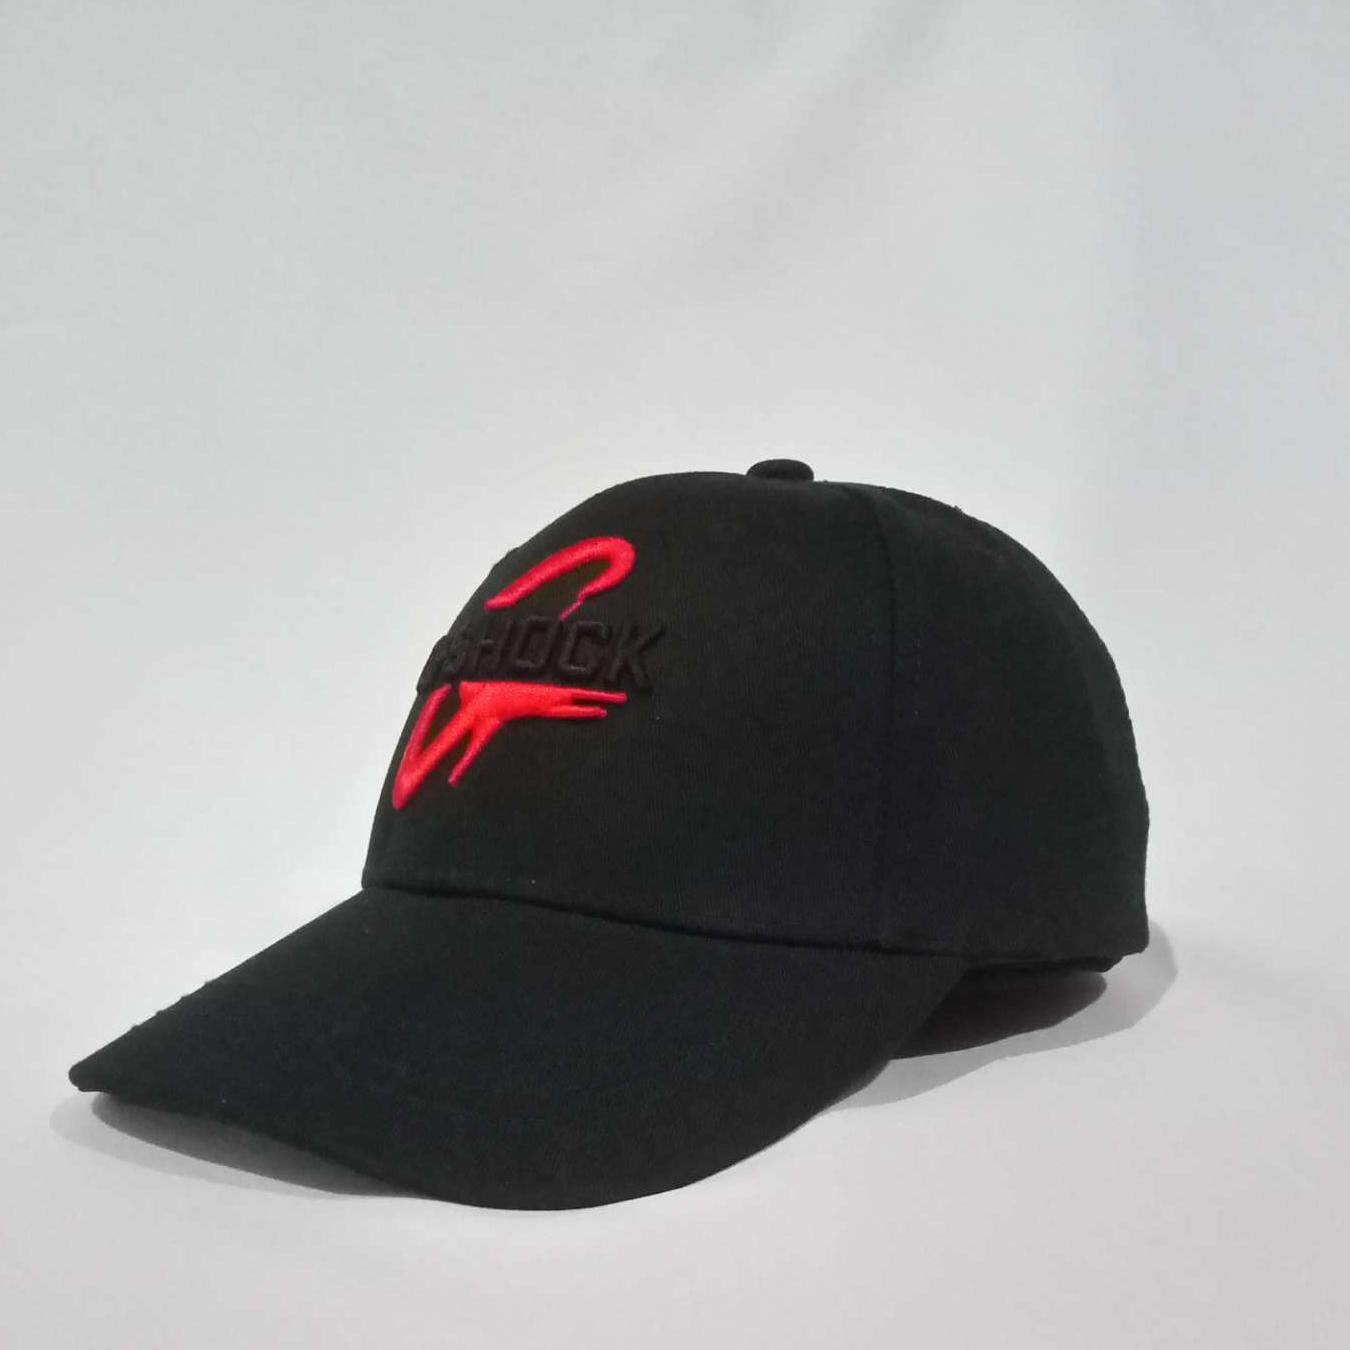 Mens hats buy mens hats at best price in malaysia lazada jpg 1350x1350  Roblox winter hats e5bb15d0aeff